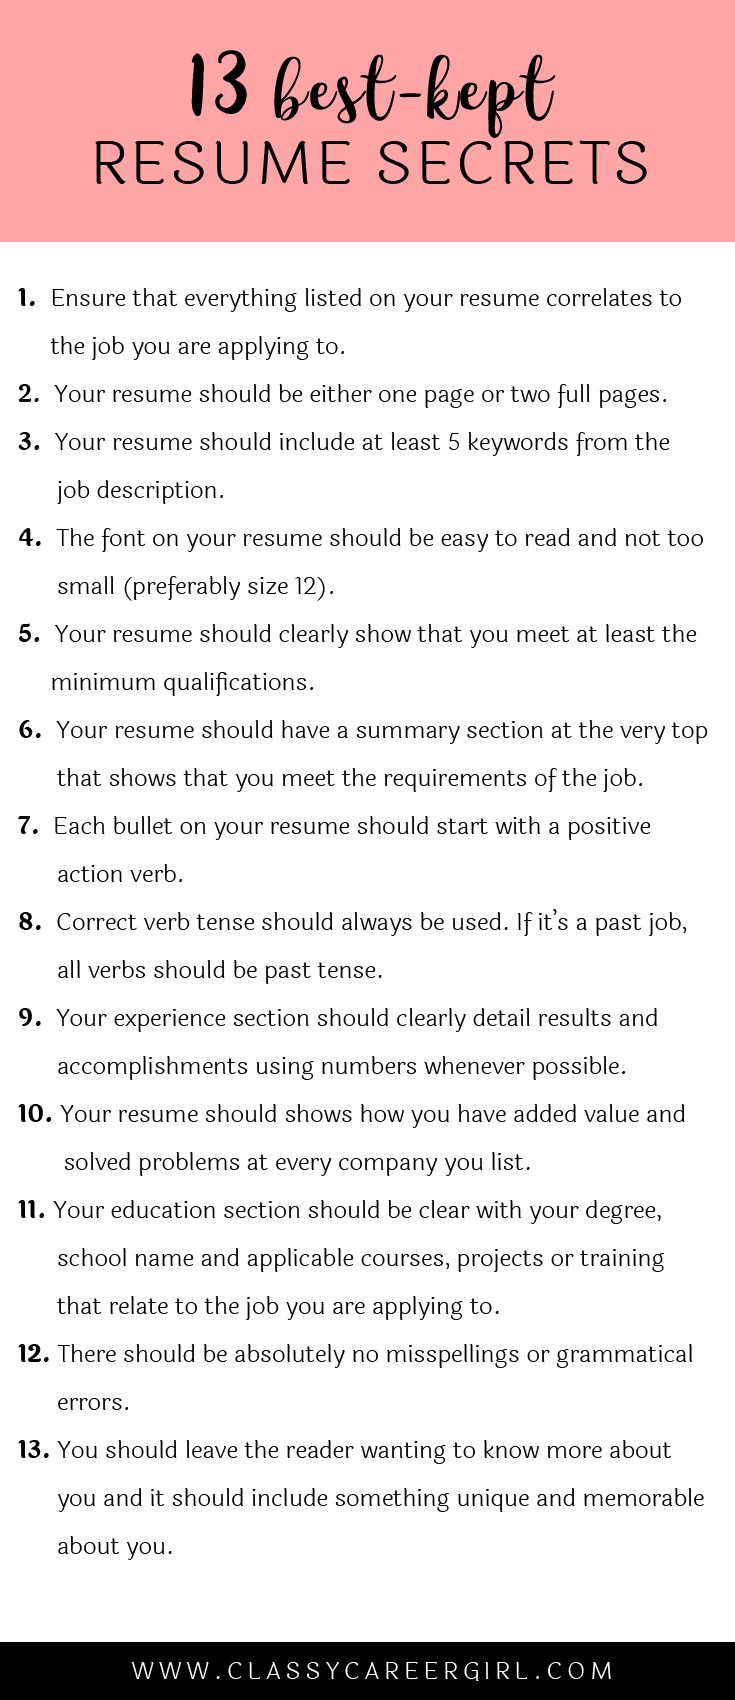 Opposenewapstandardsus  Picturesque  Ideas About Resume On Pinterest  Cv Format Resume Cv And  With Extraordinary Some Hiring Managers Will Toss Your Resume Out If You Dont Know These  With Divine Sheryl Sandberg Resume Also Do You Need A Cover Letter For Your Resume In Addition Formato De Resume And Culinary Resumes As Well As Automotive Sales Resume Additionally Police Officer Resume Template From Pinterestcom With Opposenewapstandardsus  Extraordinary  Ideas About Resume On Pinterest  Cv Format Resume Cv And  With Divine Some Hiring Managers Will Toss Your Resume Out If You Dont Know These  And Picturesque Sheryl Sandberg Resume Also Do You Need A Cover Letter For Your Resume In Addition Formato De Resume From Pinterestcom